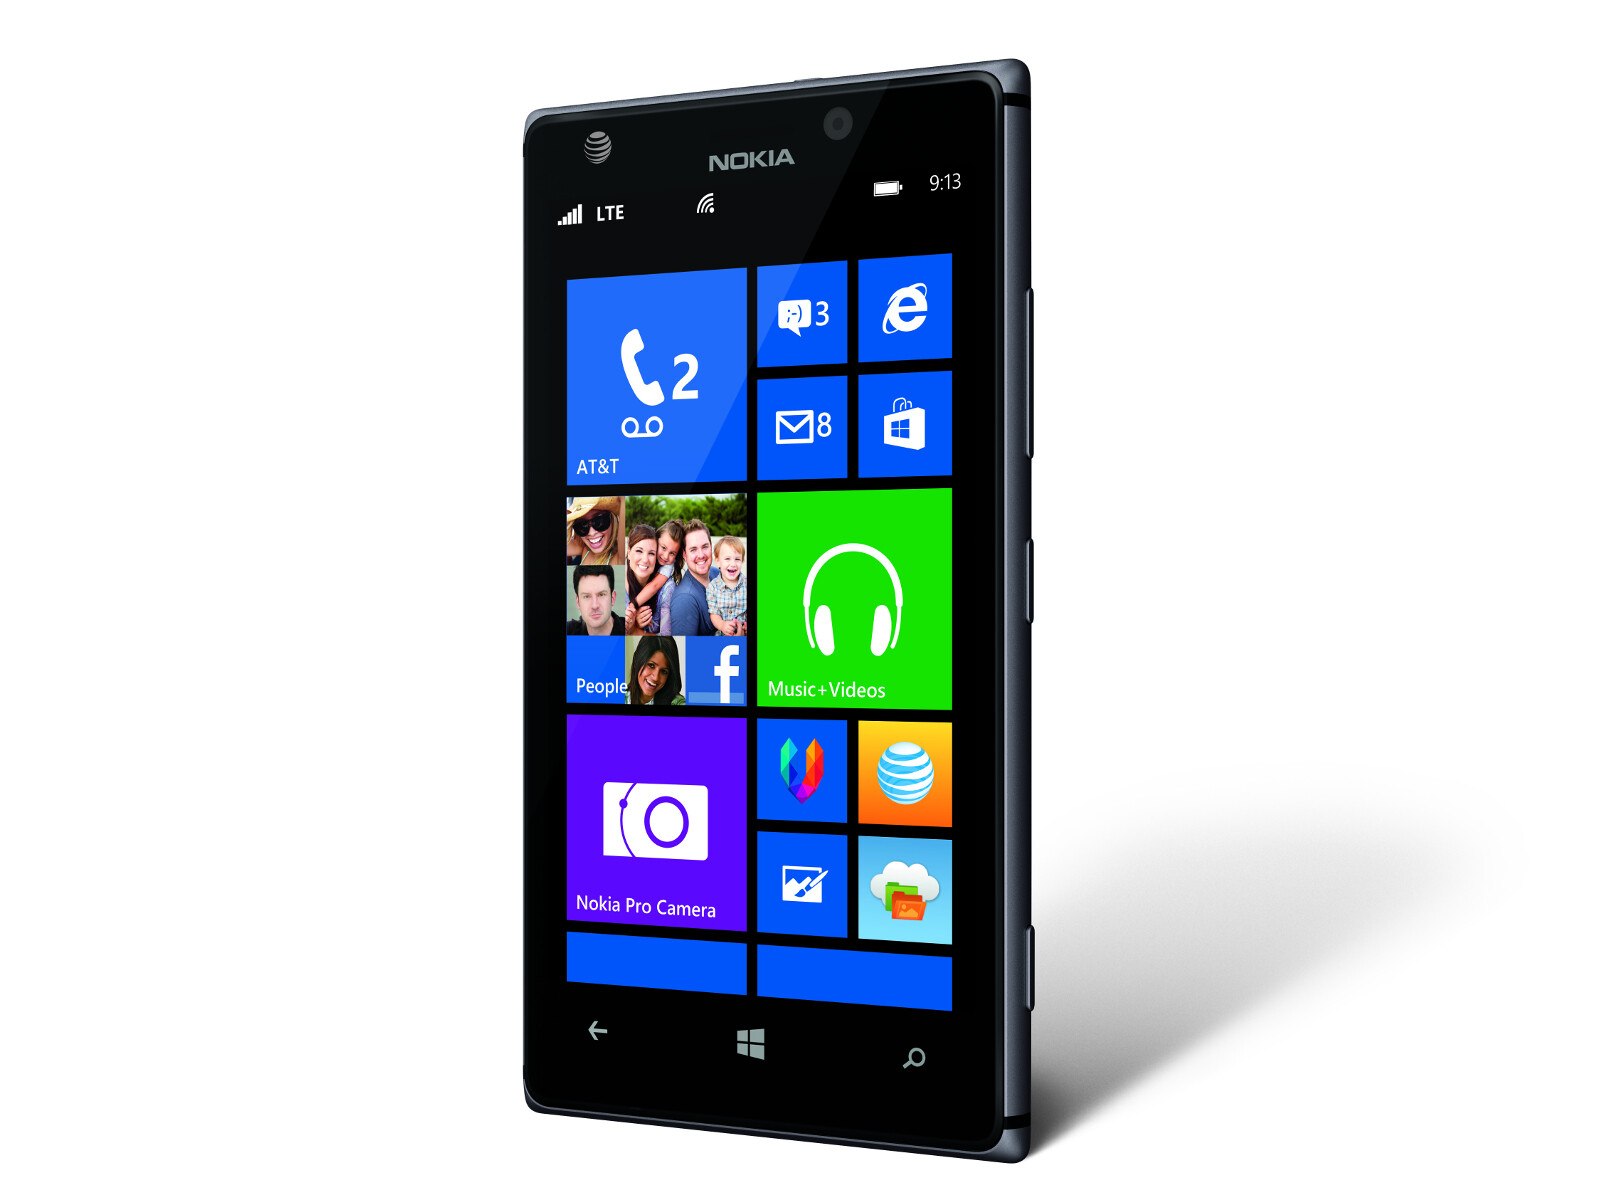 AT&T launches the Nokia Lumia 925 on September 13 for $99 ...